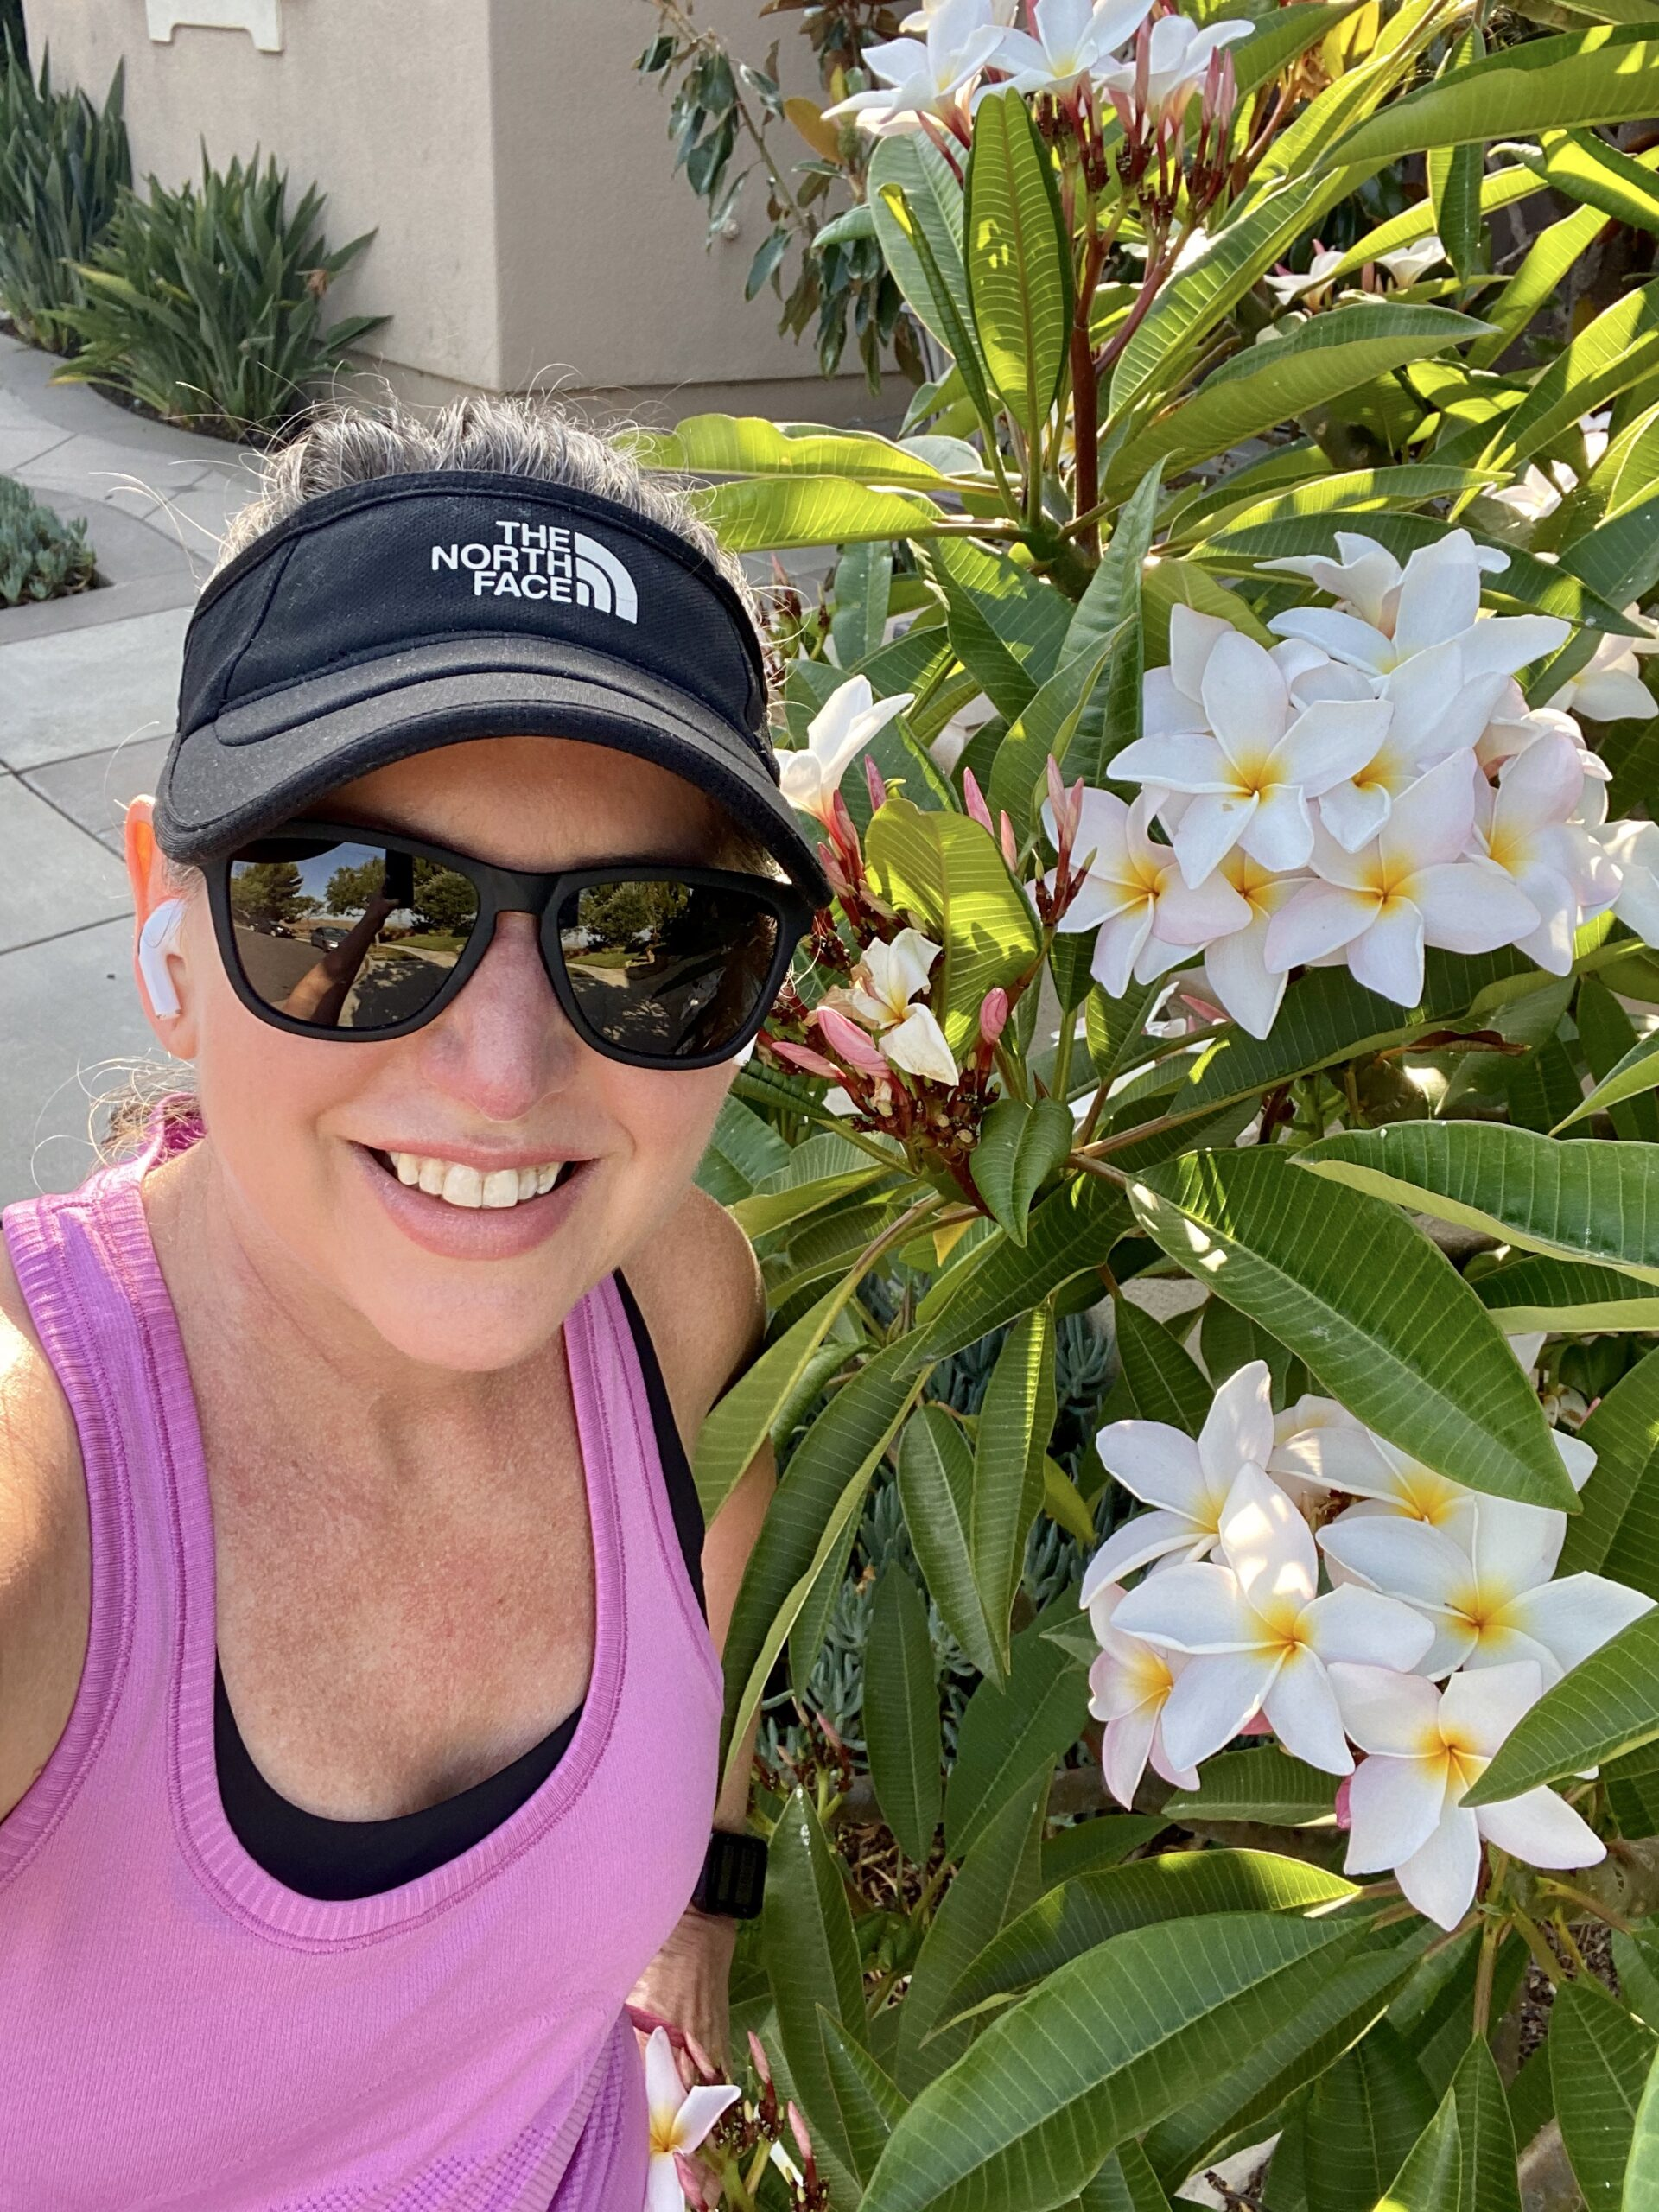 Amy on a run in front of a large plumeria tree in bloom